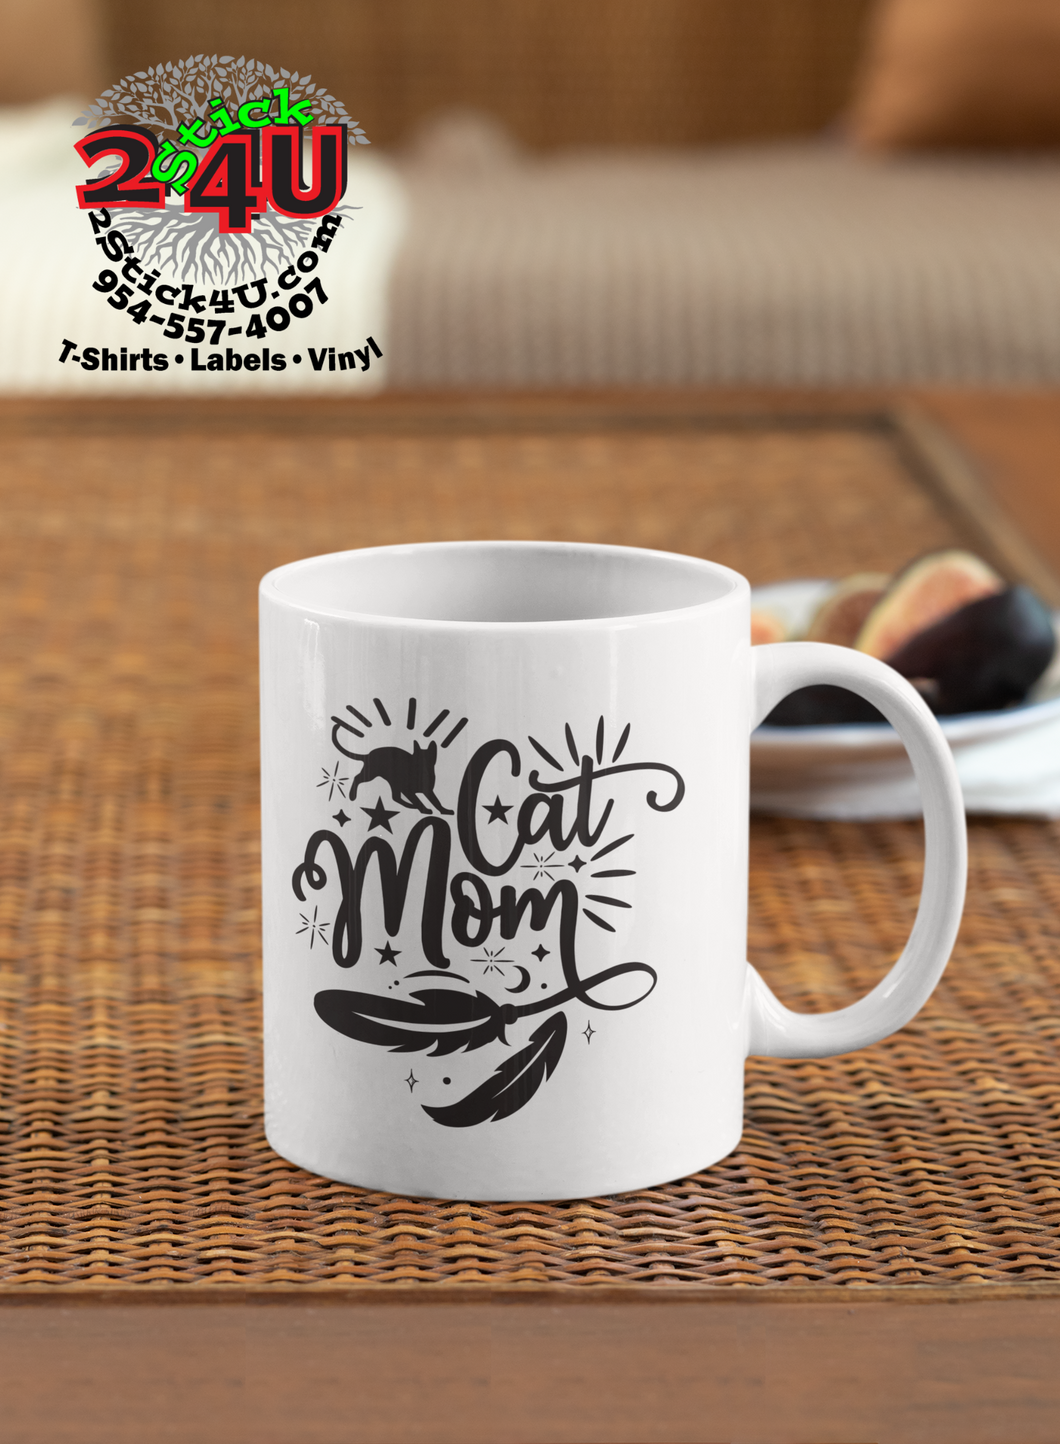 Cat Mom Coffee Mug - Home of Buy 3, Get 1 Free. Long Lasting Custom Designed Coffee Mugs for Business and Pleasure. Perfect for Christmas, Housewarming, Wedding Party gifts